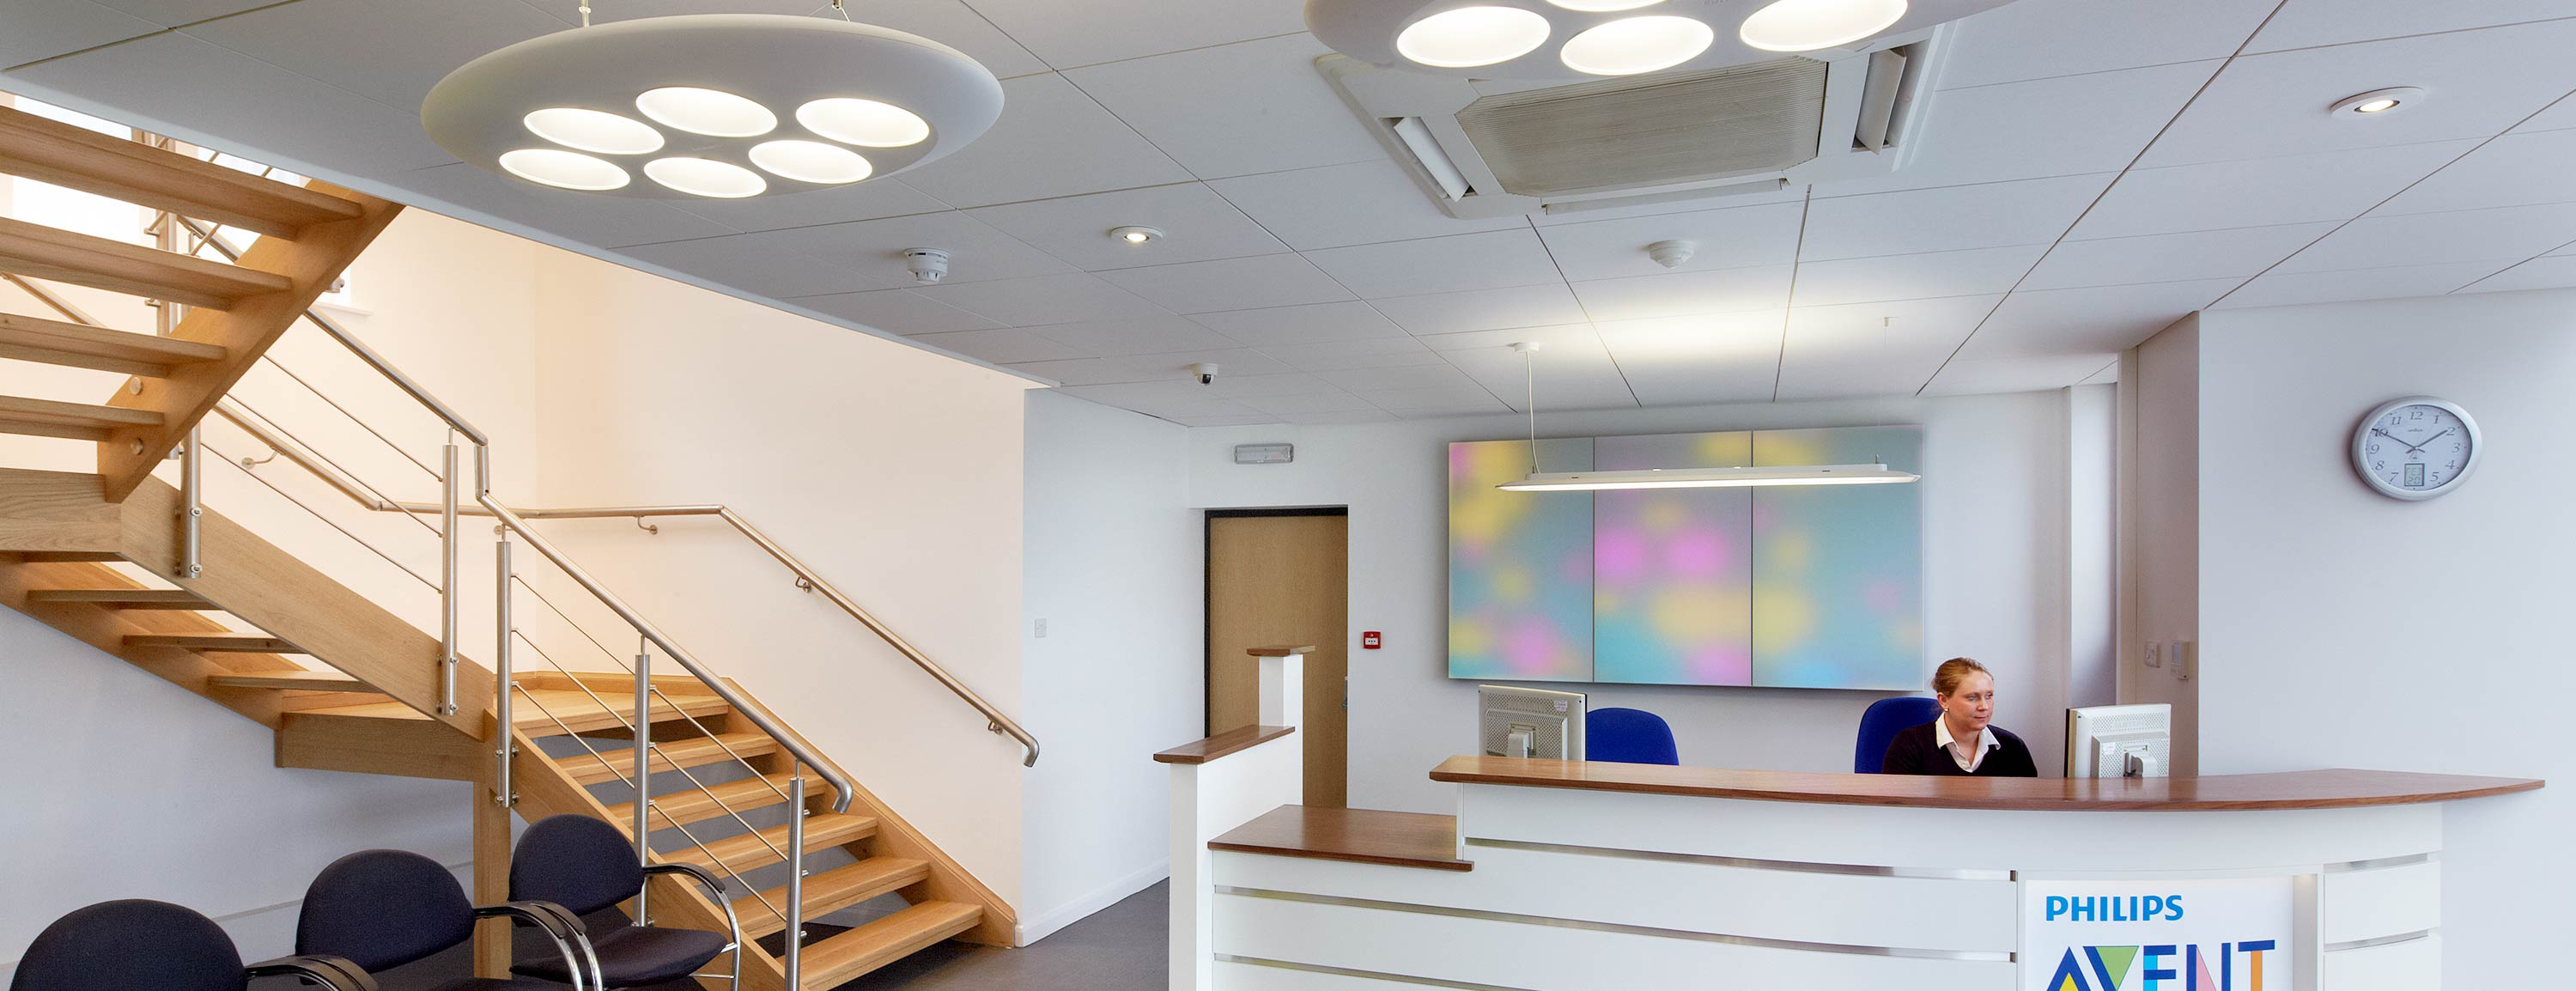 lighting for office. philips avent lighting for office